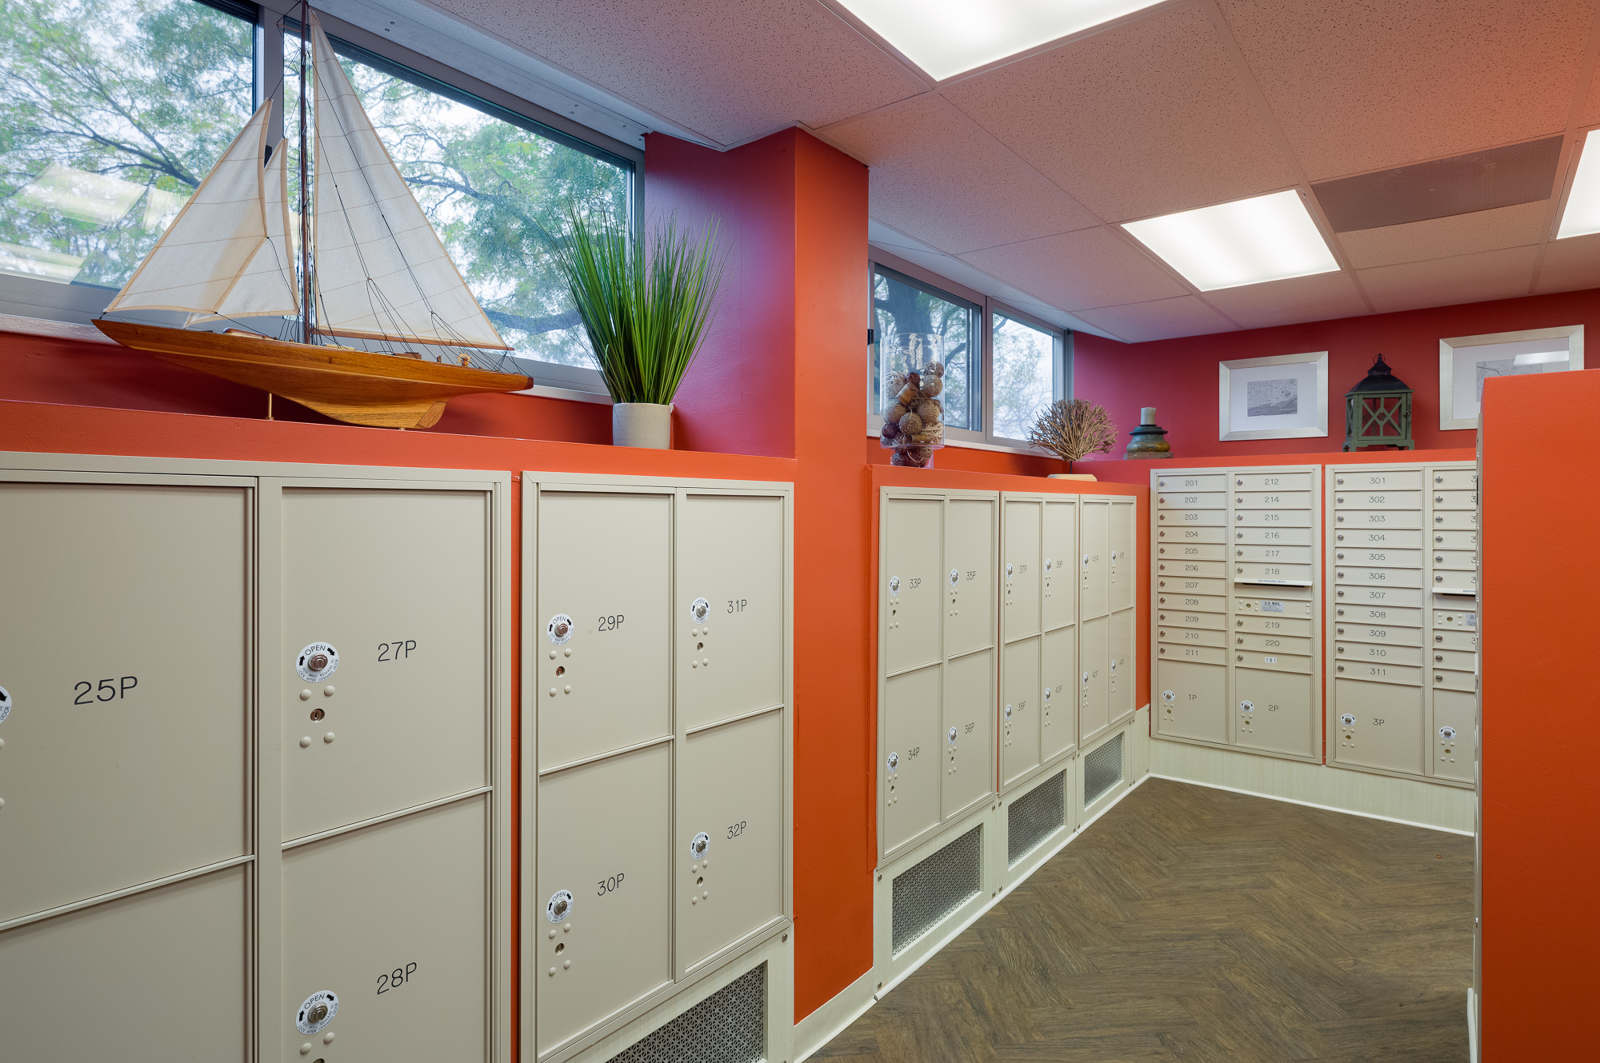 After   - The mailroom is a new addition to the building's first floor.